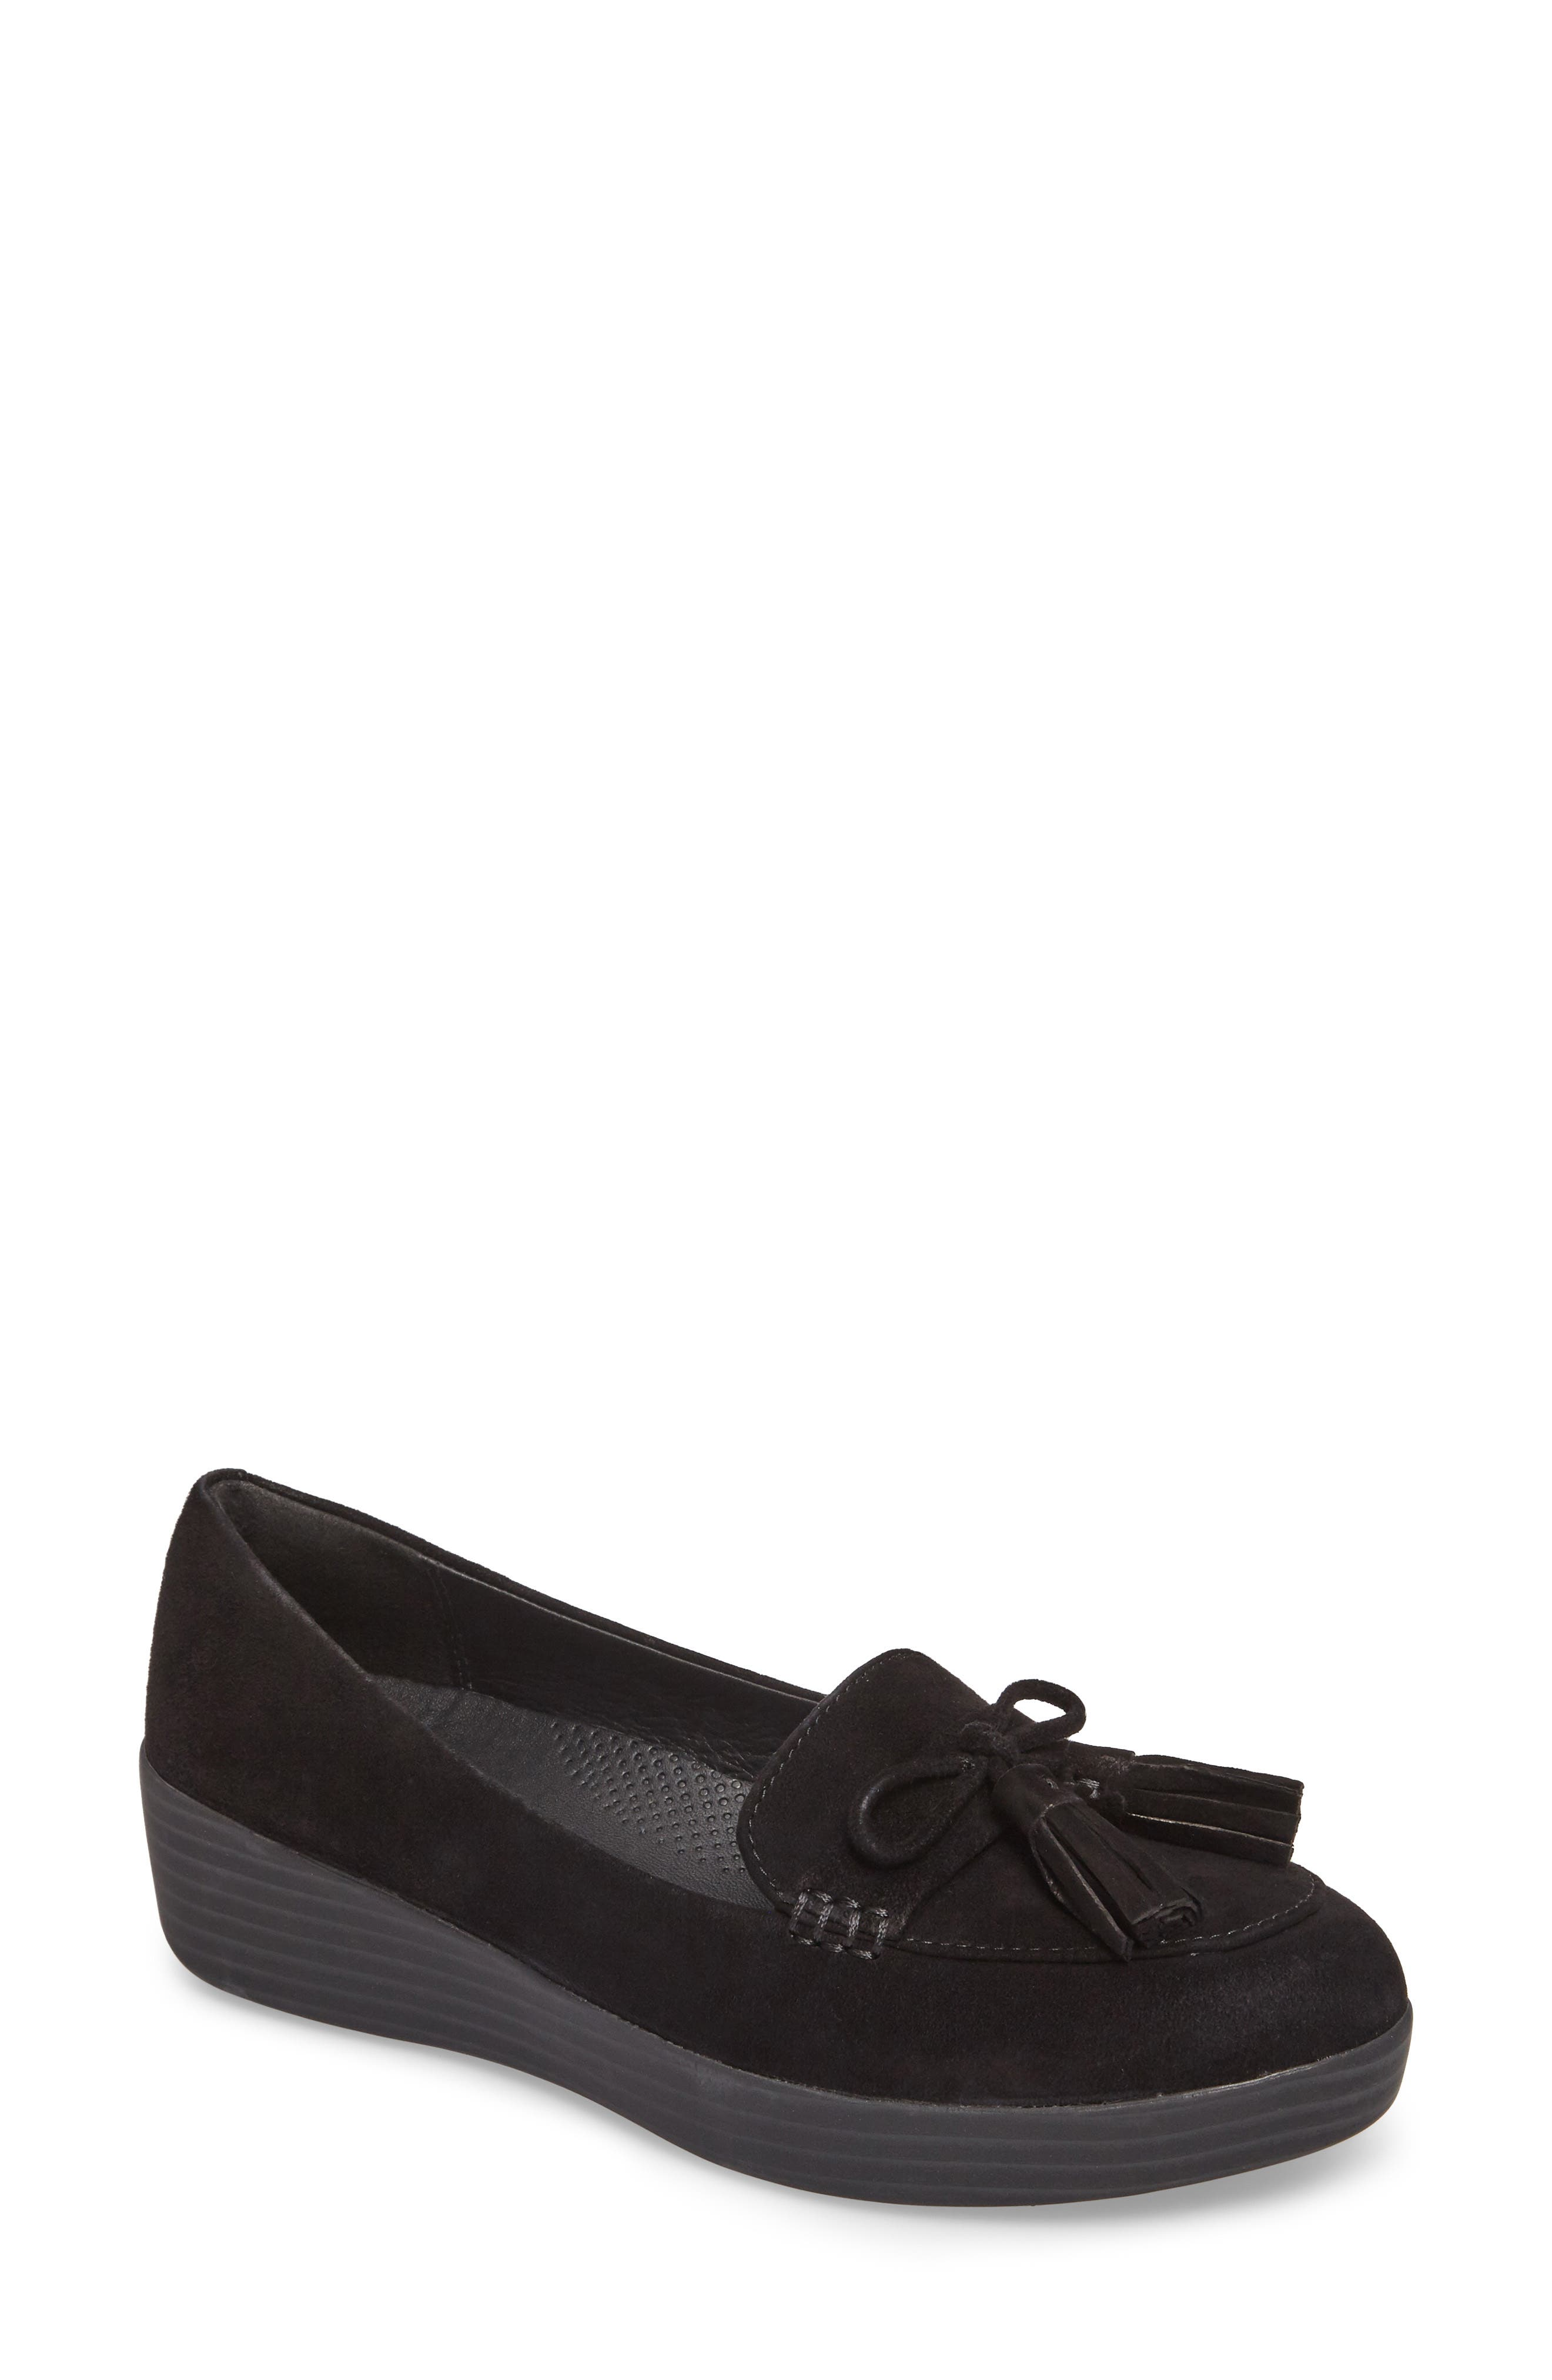 Tassel Bow Sneakerloafer<sup>™</sup> Water Repellent Flat,                             Main thumbnail 1, color,                             All Black